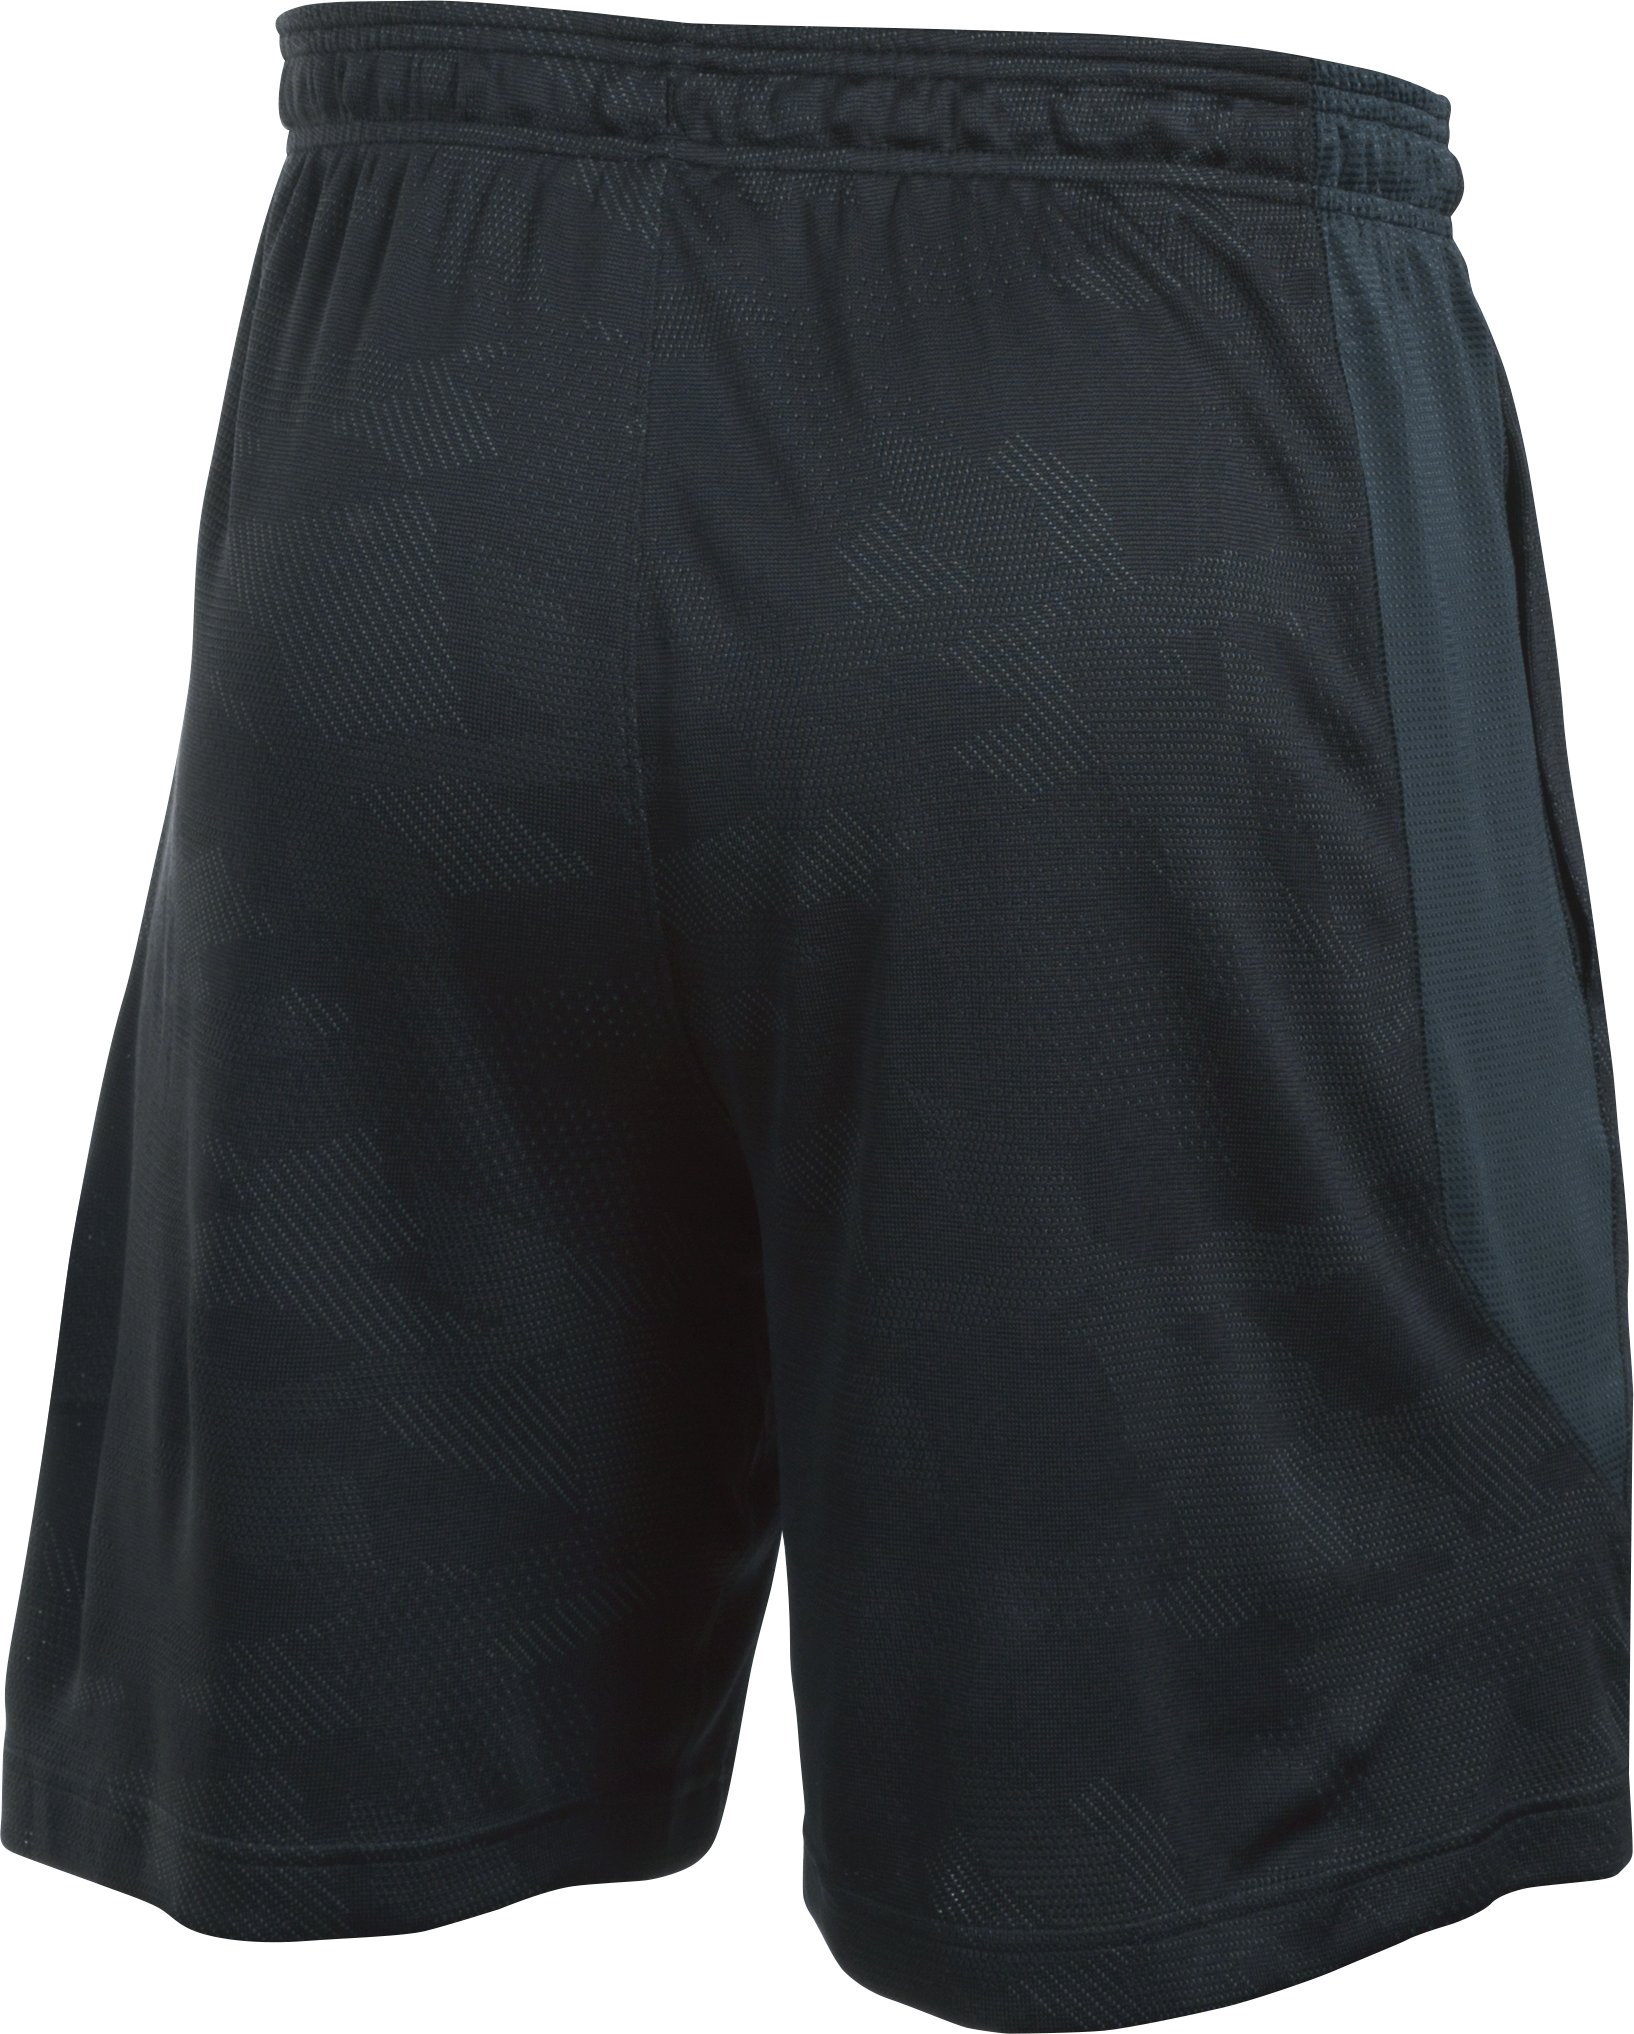 "Men's UA Raid Graphic 8"" Shorts, Black"